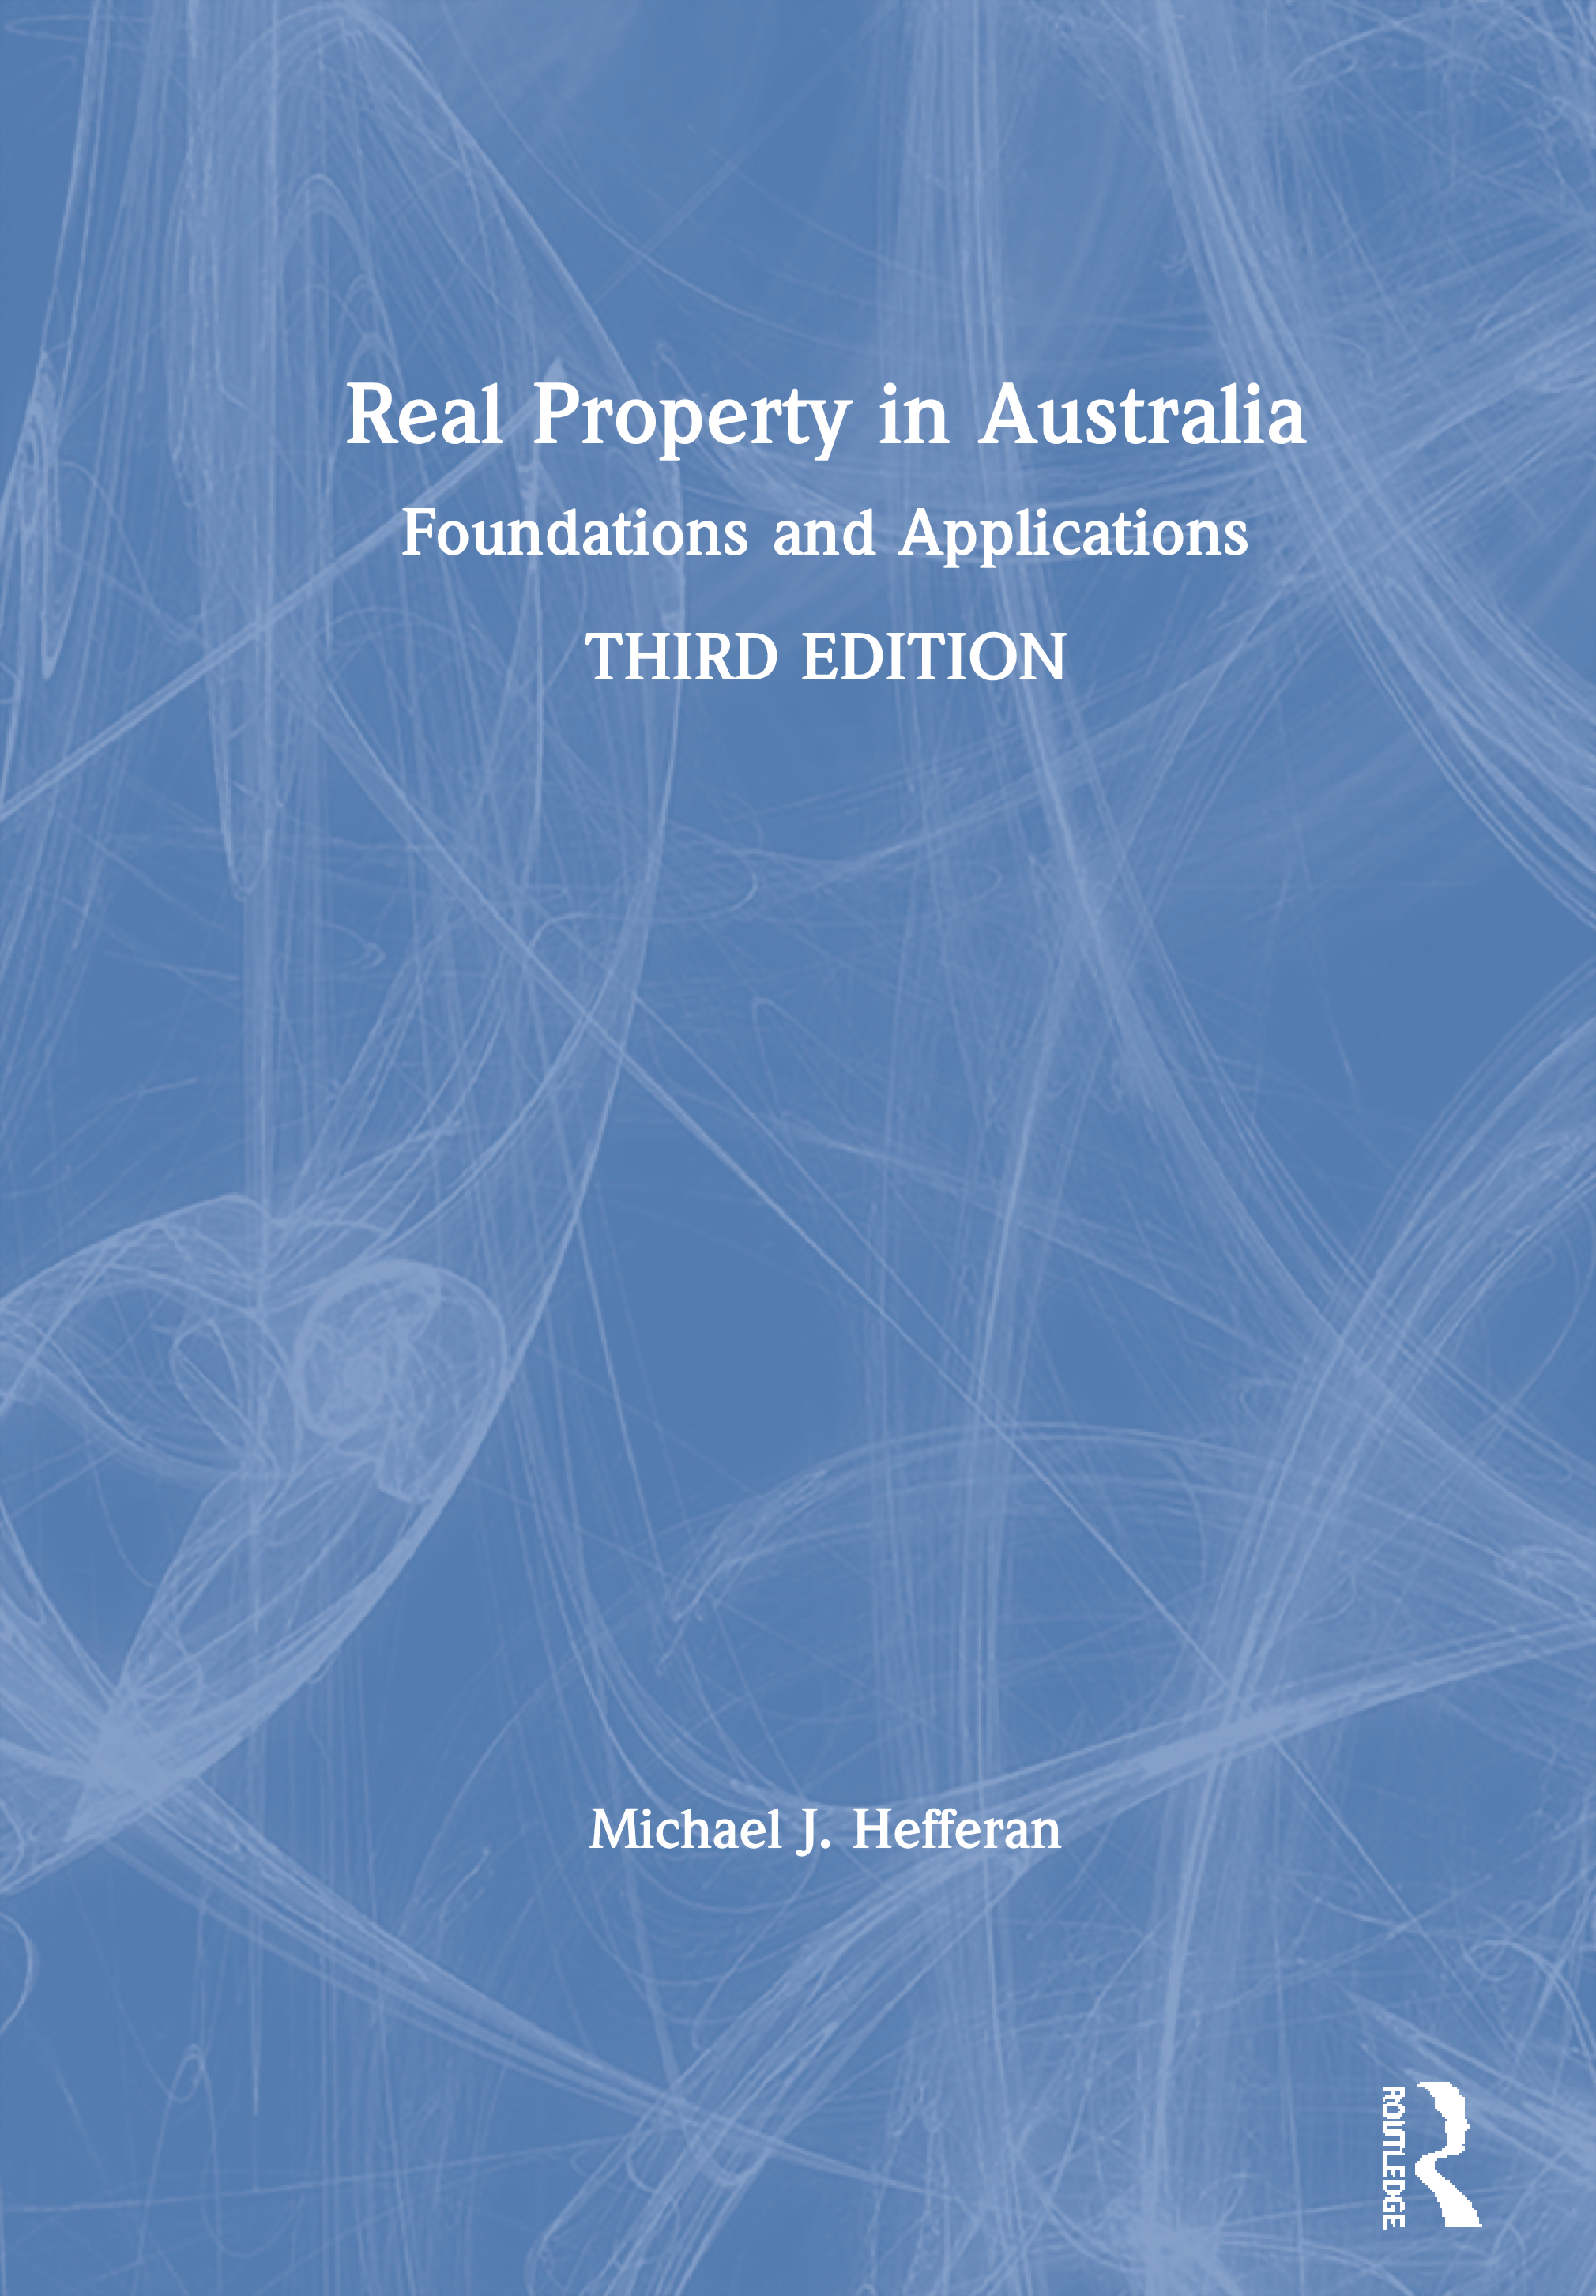 Real Property in Australia: Foundations and Applications book cover